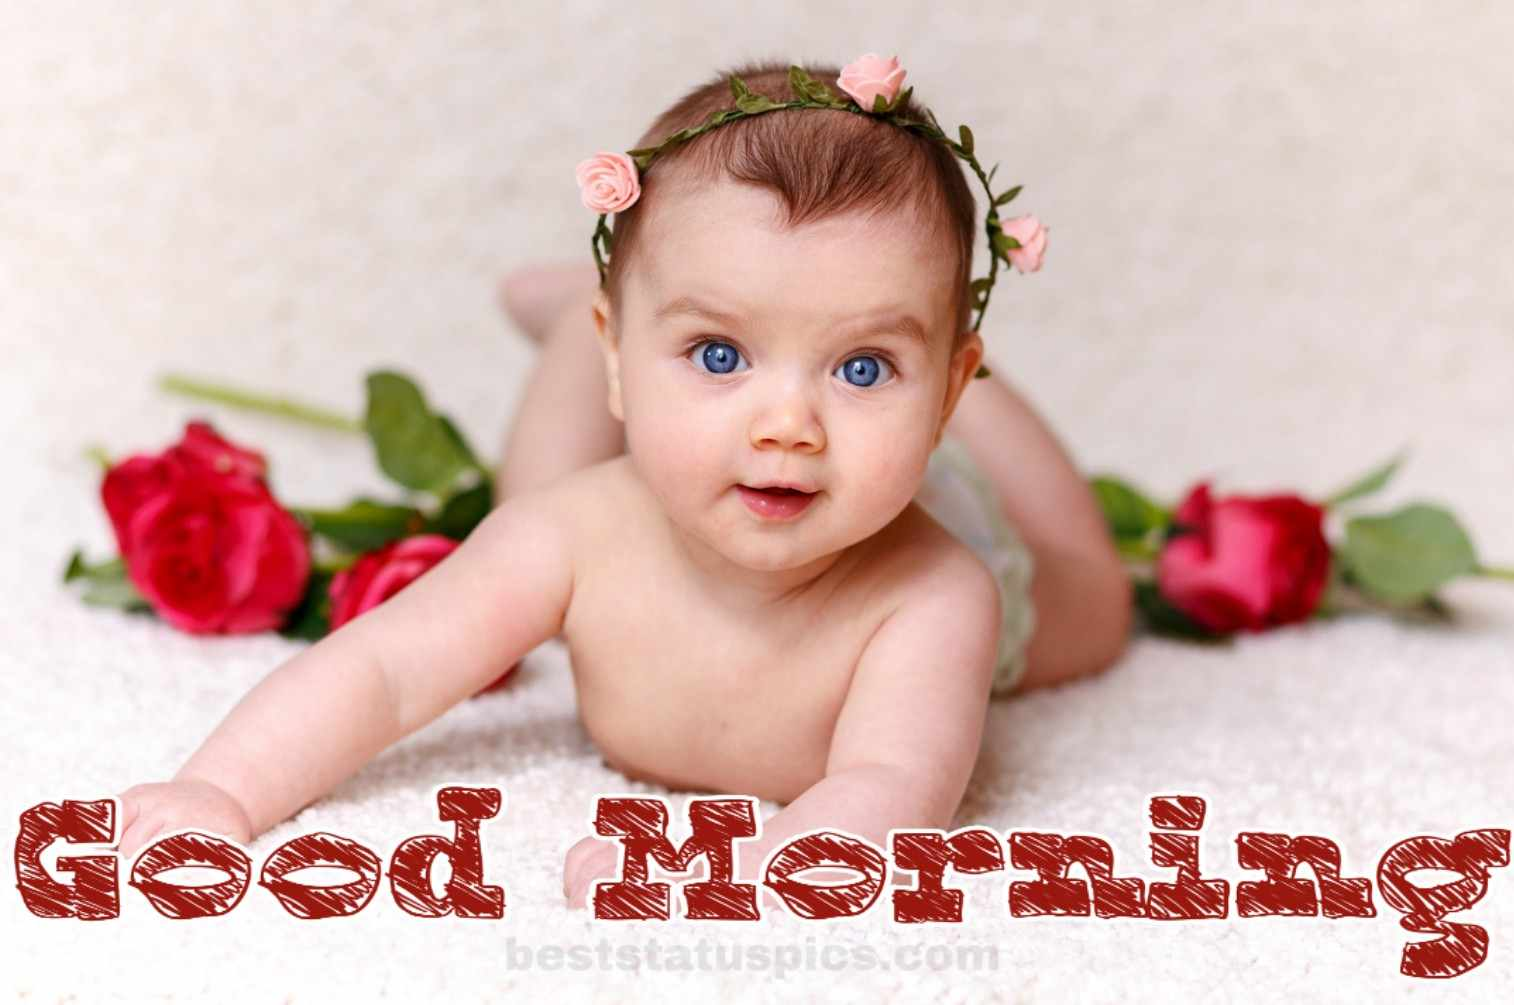 Cute good morning baby images whatsapp 23